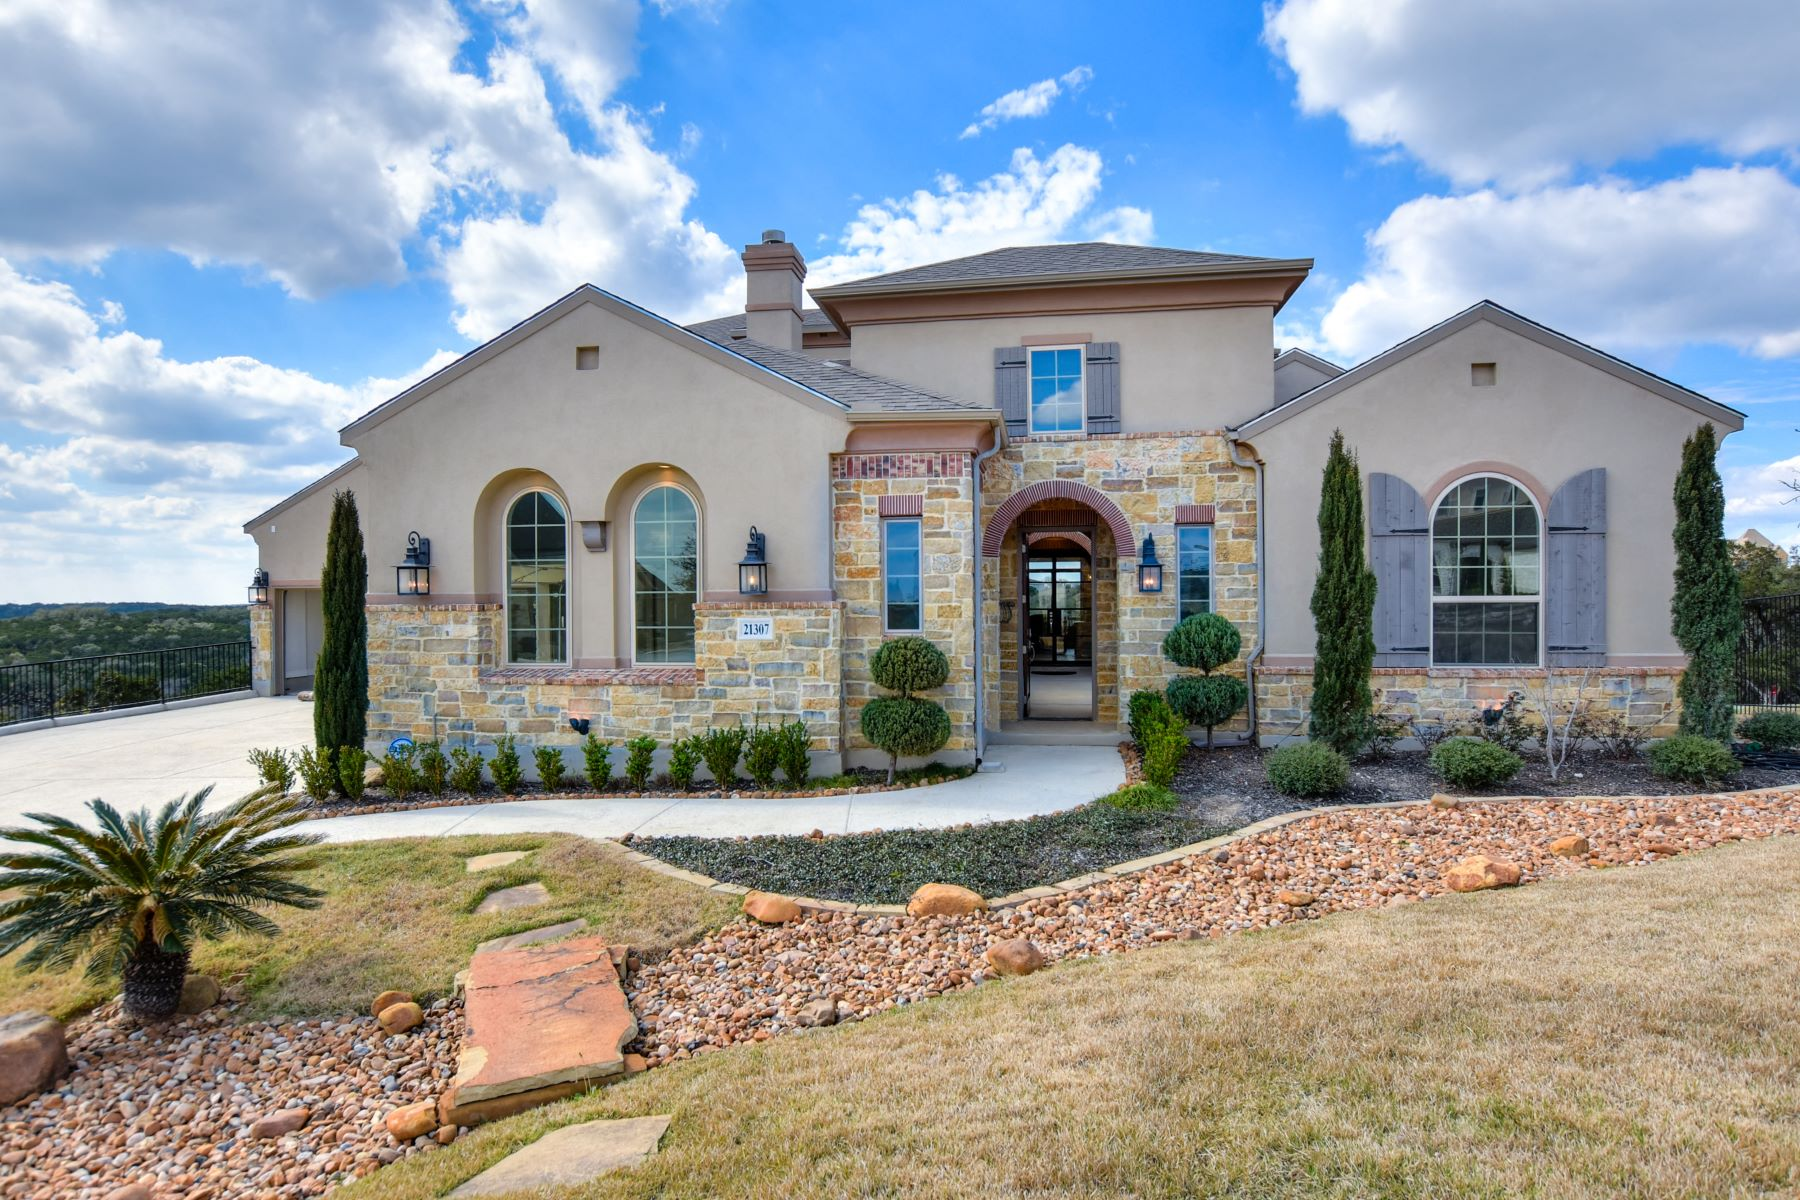 Single Family Home for Sale at Spectacular Hill Country Estate 21307 Rembrandt Hill, San Antonio, Texas, 78256 United States